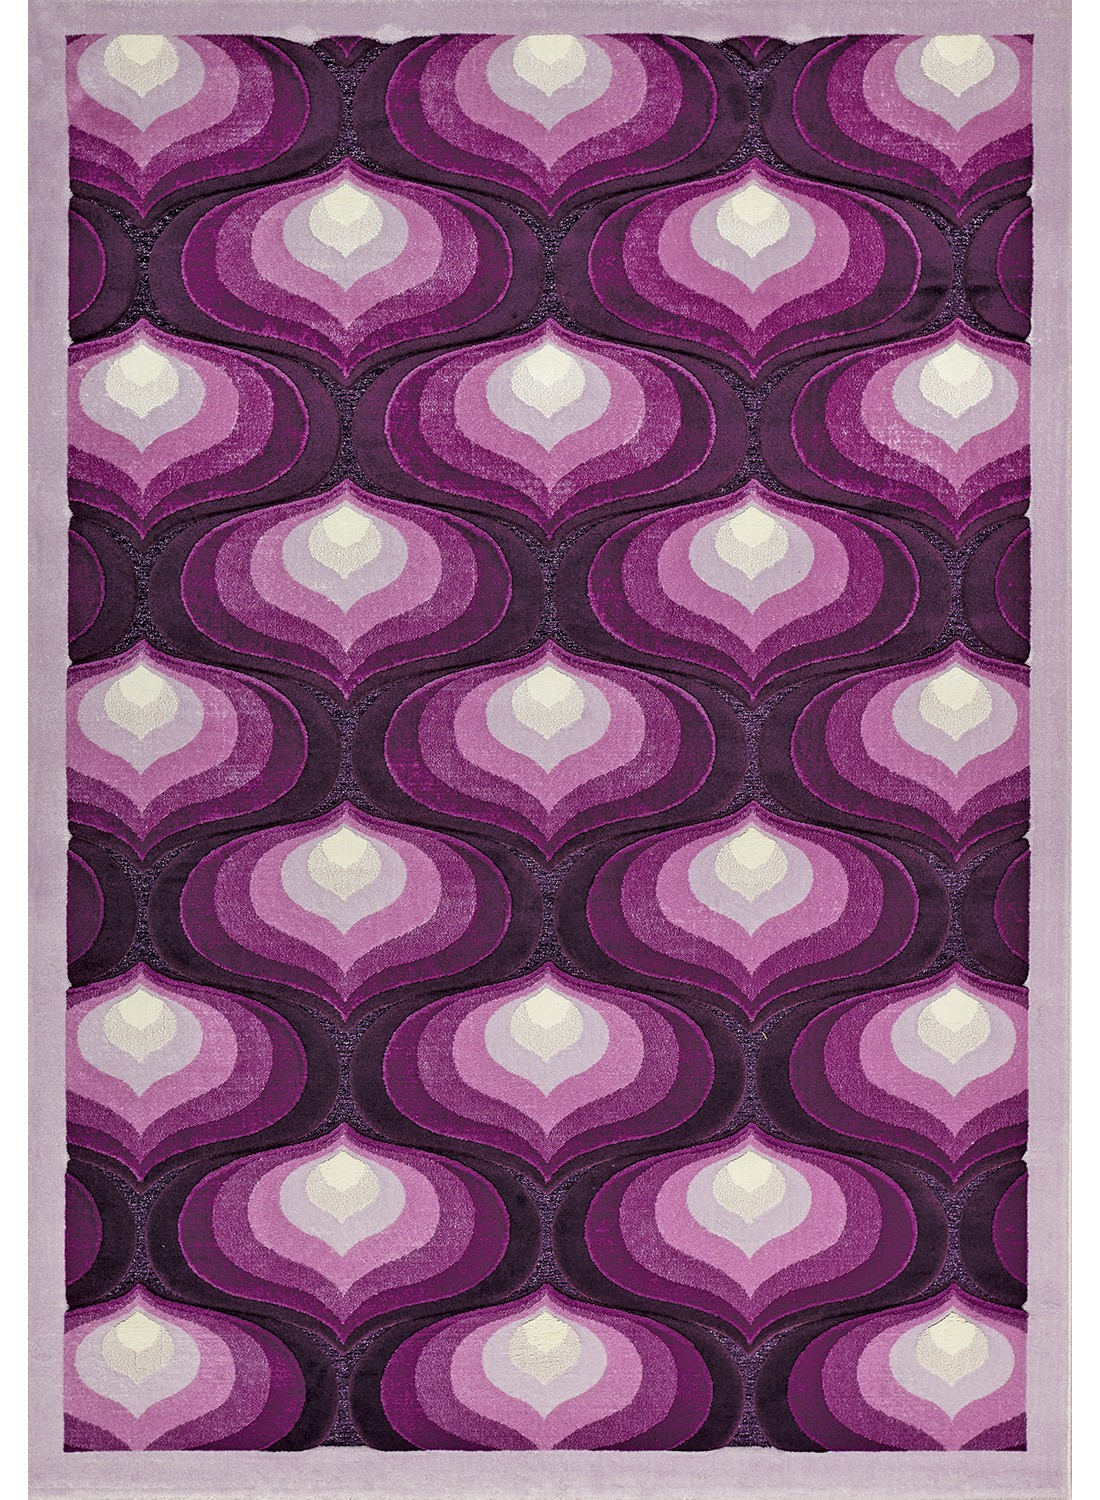 Best Tapis Violet Clair Gallery - House Design - marcomilone.com